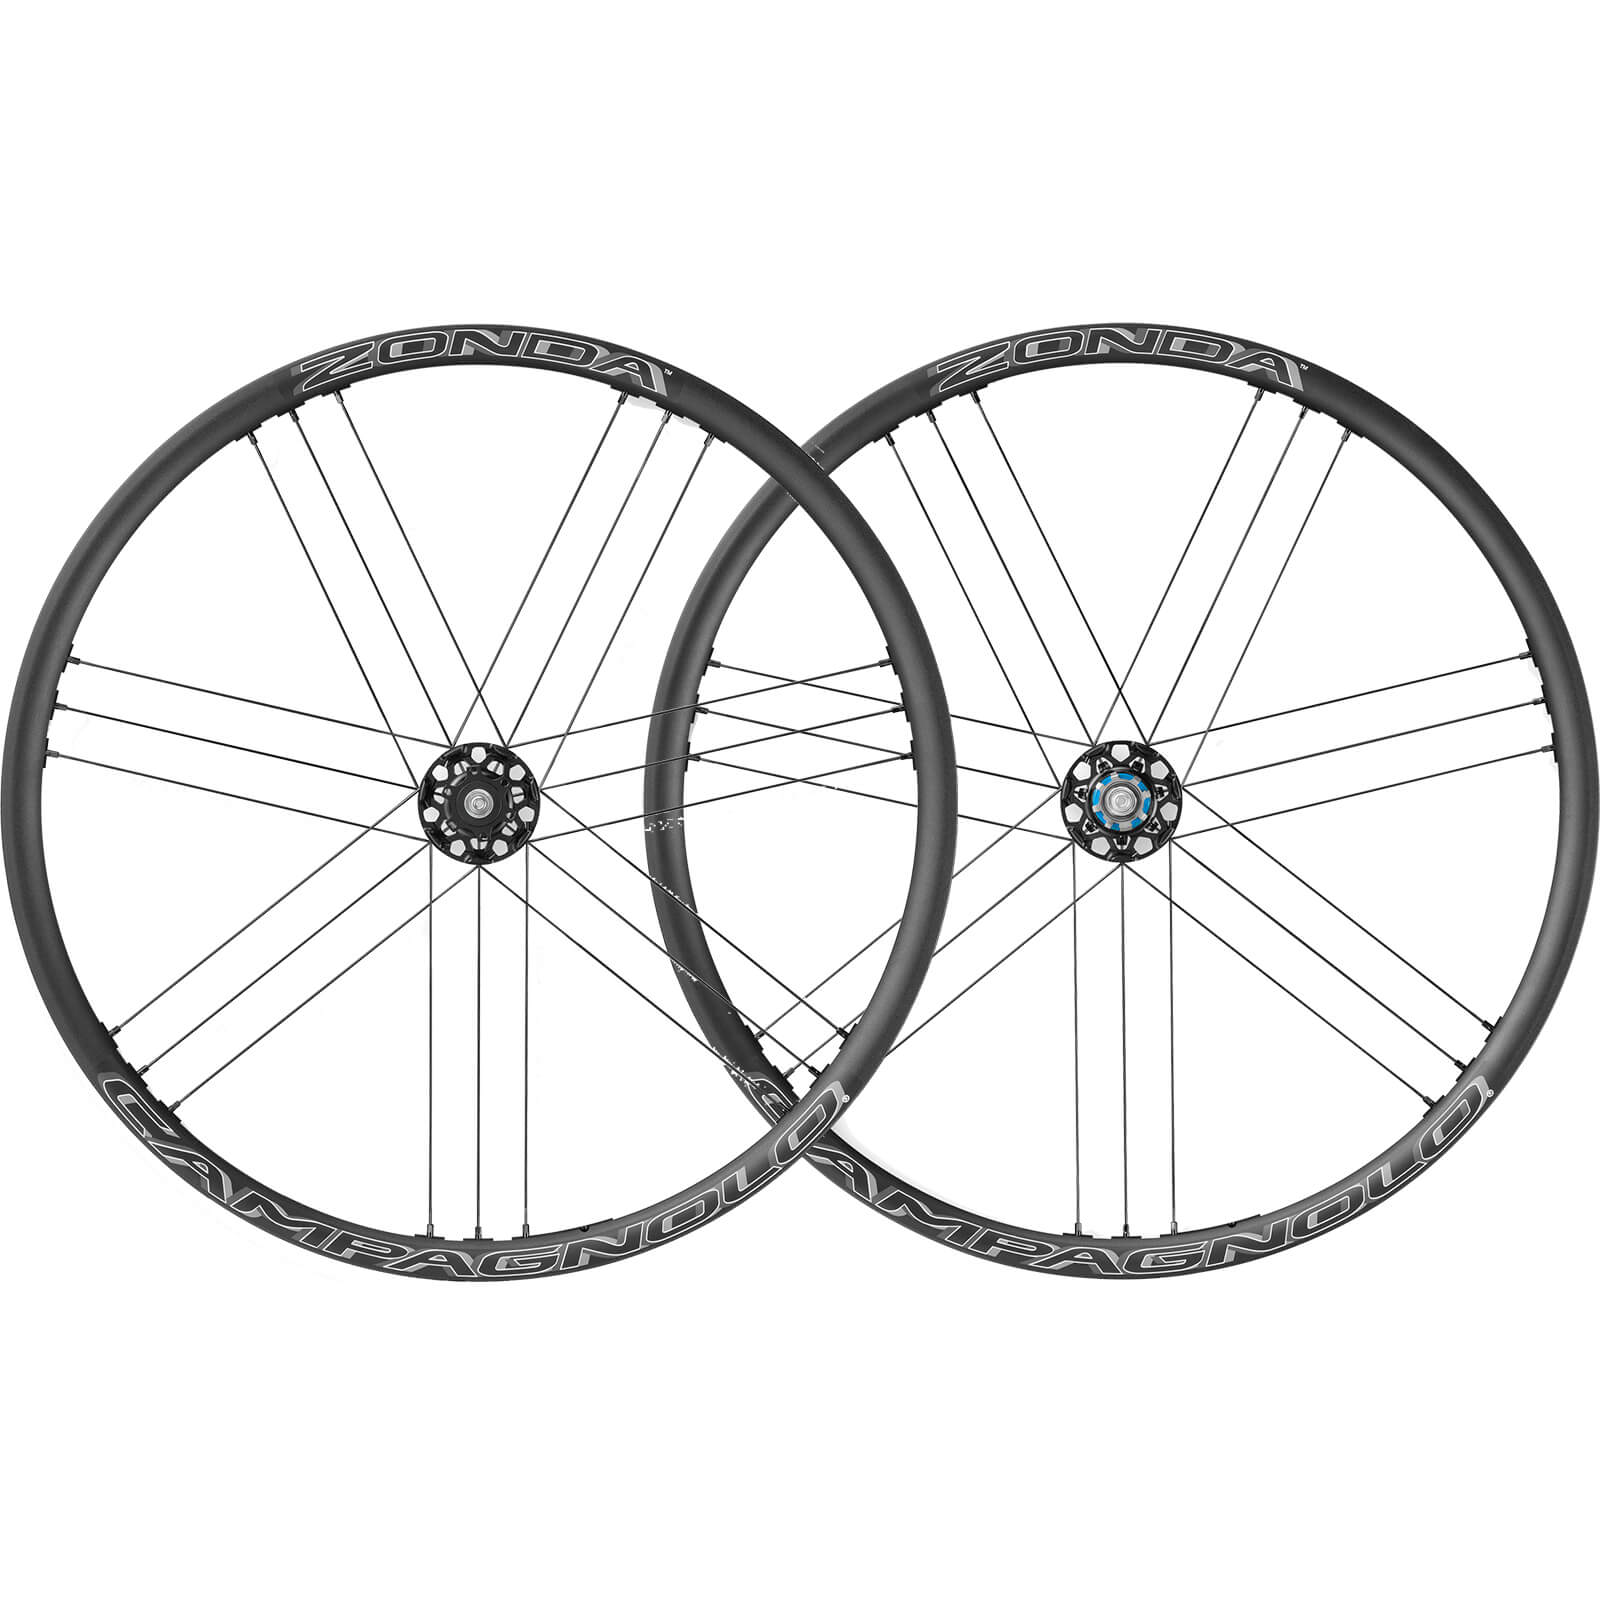 Campagnolo Zonda C17 Disc Brake Bolt-Thru Clincher Wheelset 2018 - Black